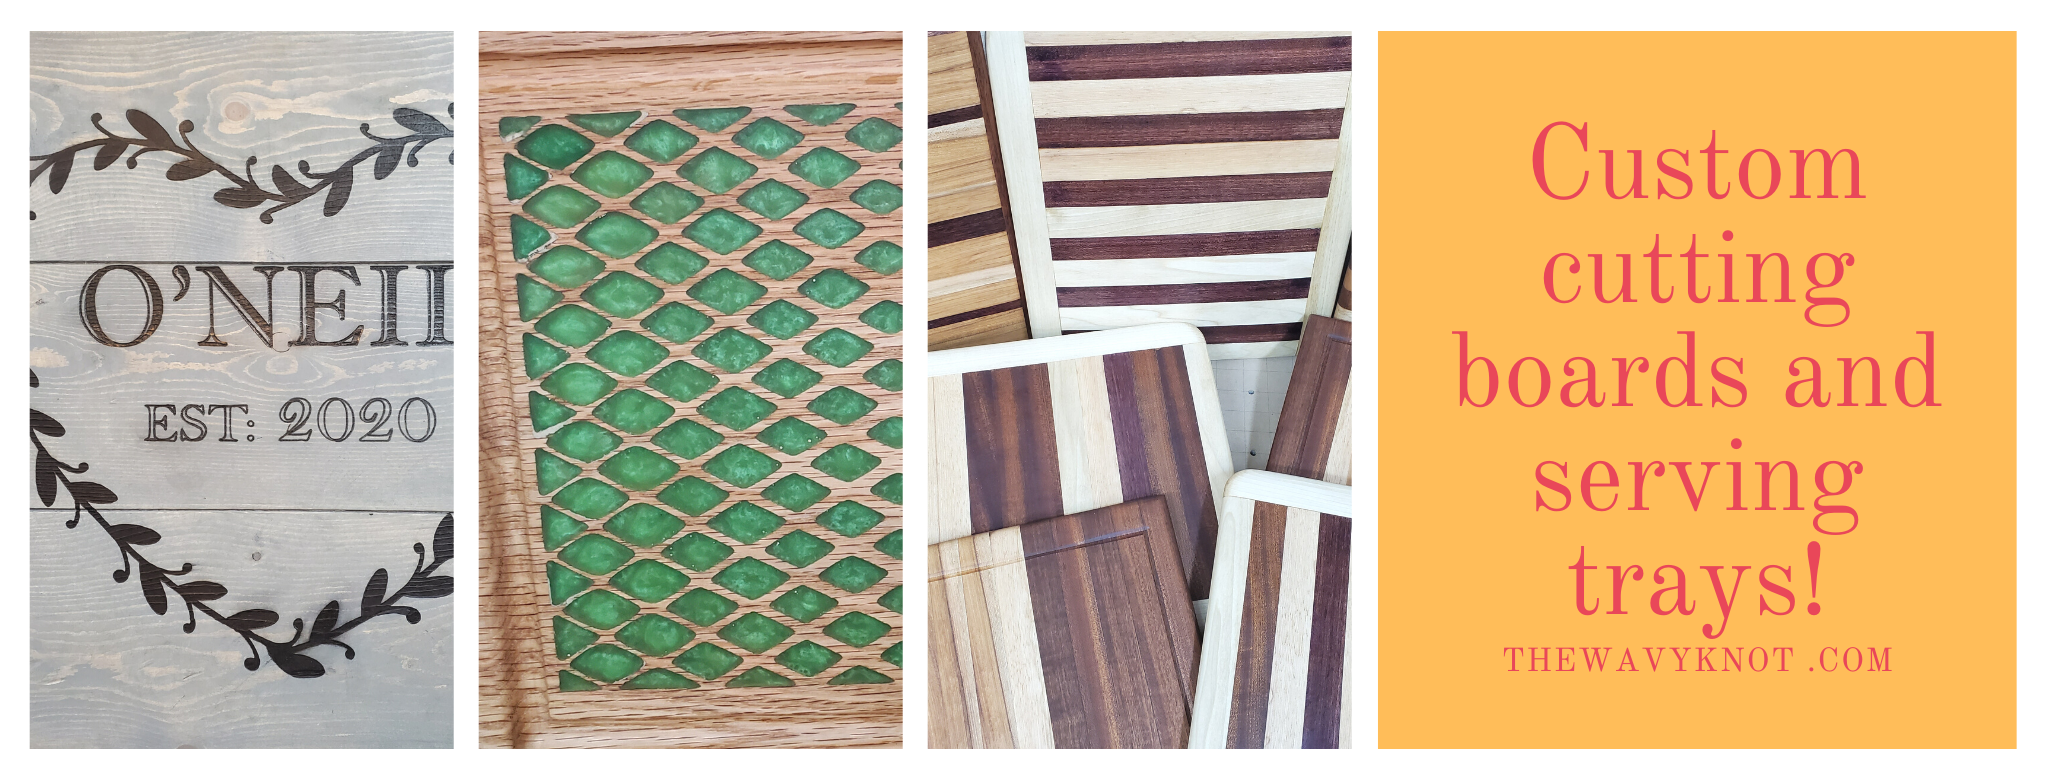 Custom cutting boards and serving trays!